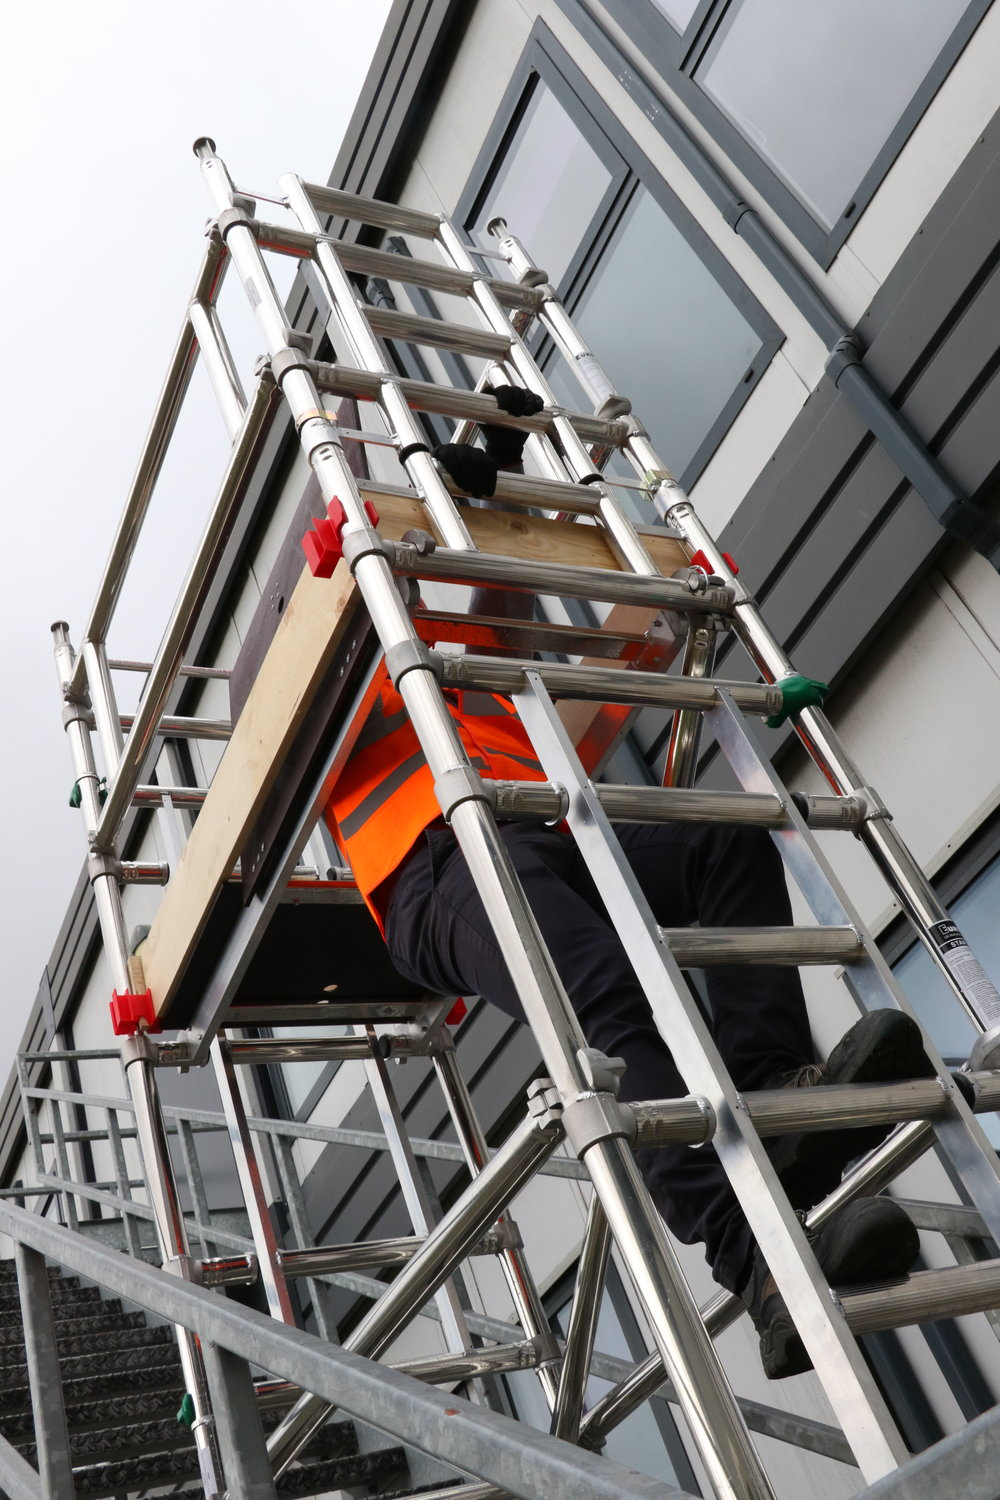 euro towers, stair access tower, bs 1139-6, working at height. safe working, staircase, access